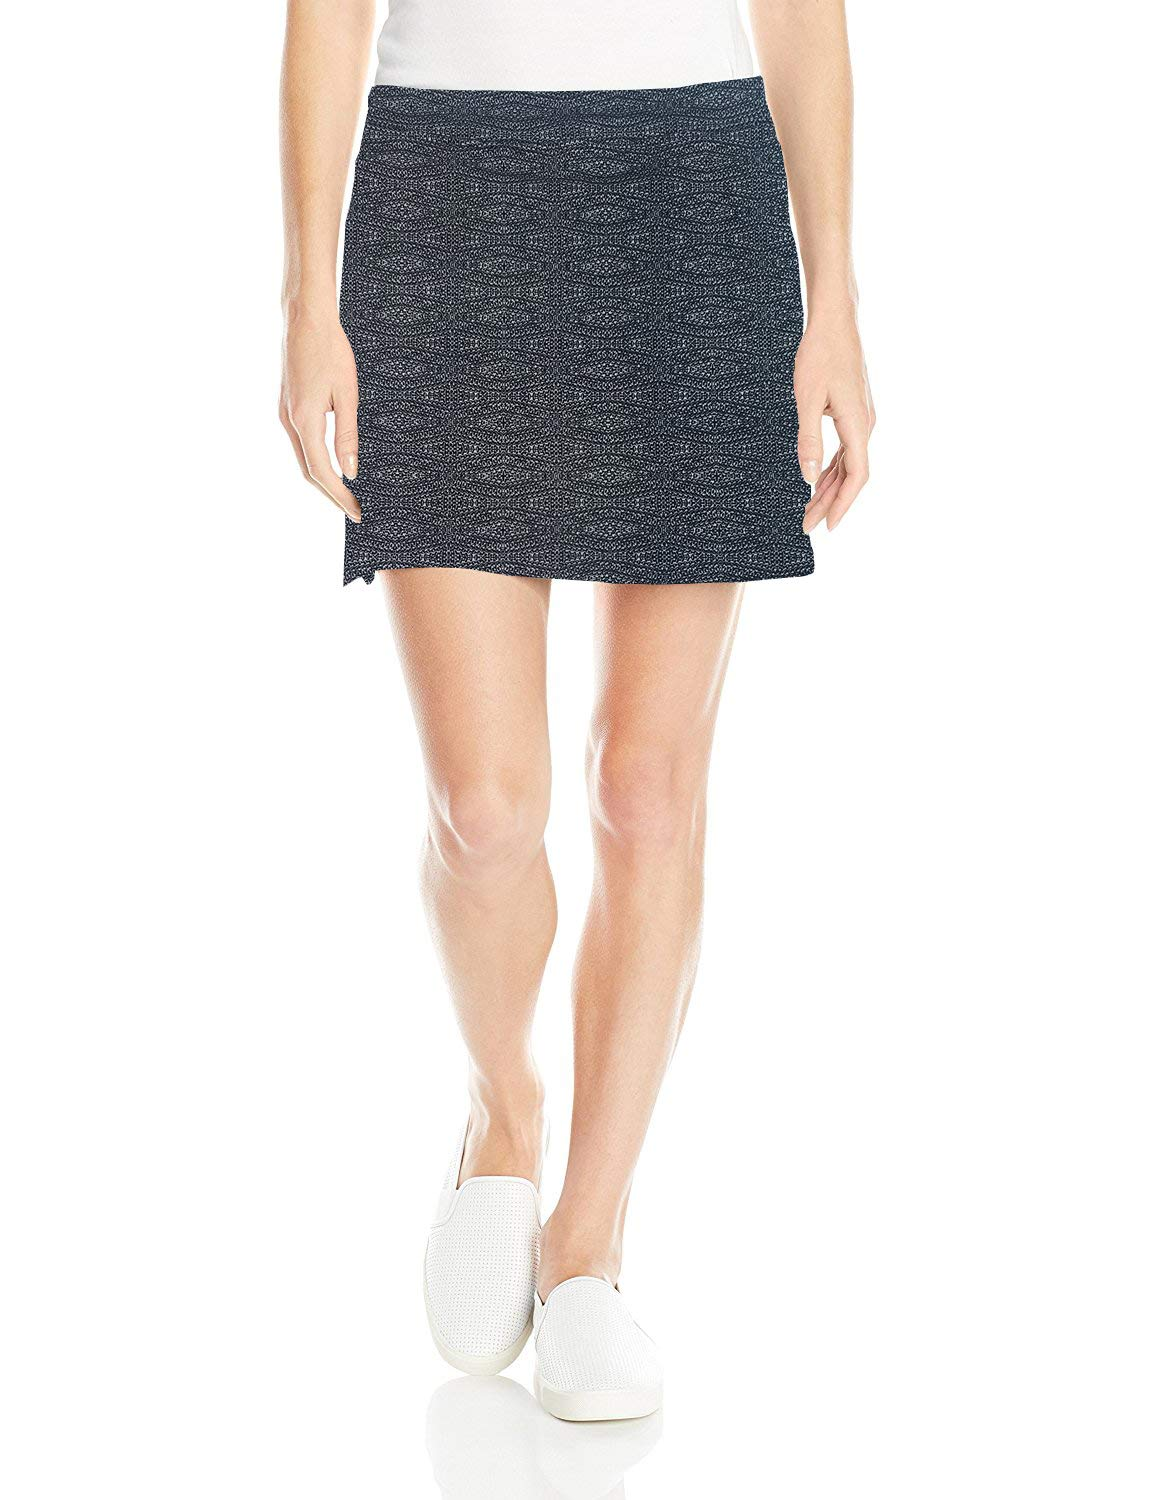 Colorado Clothing Women's Everyday Skort (Flurries, Small) by Colorado Clothing